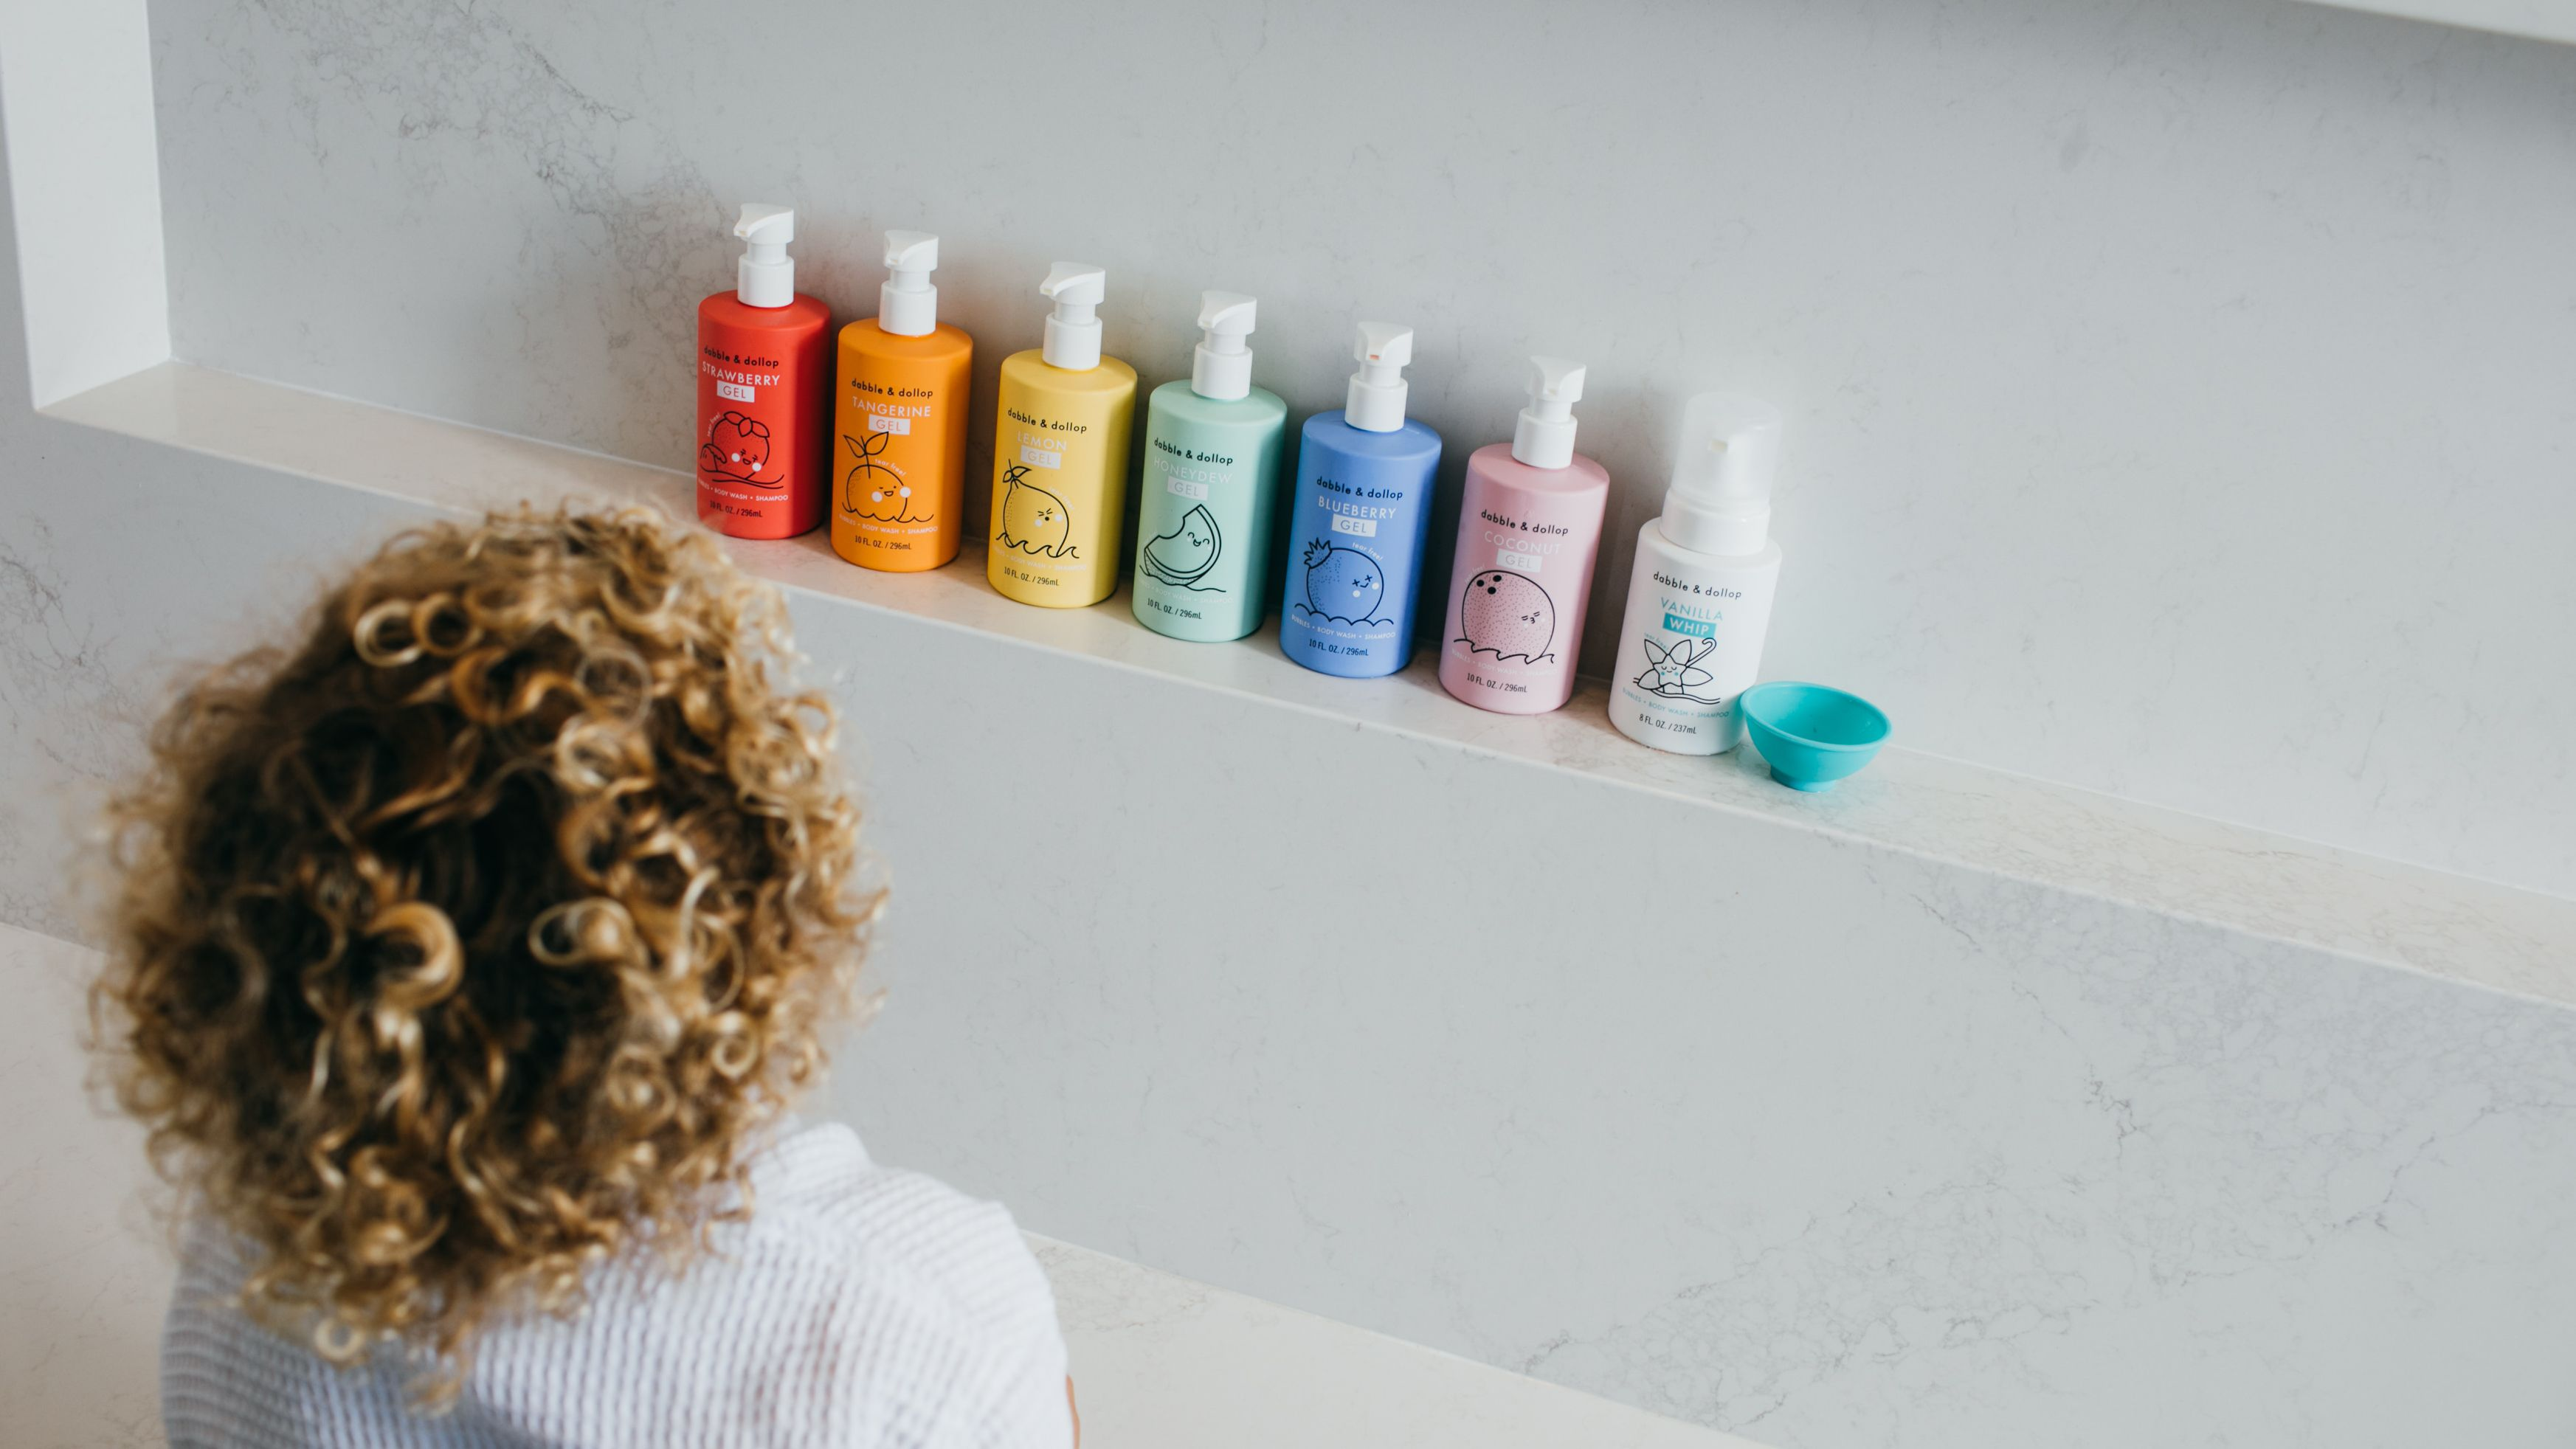 child with curly hair looking at lineup of shampoo bottles in multiple colors